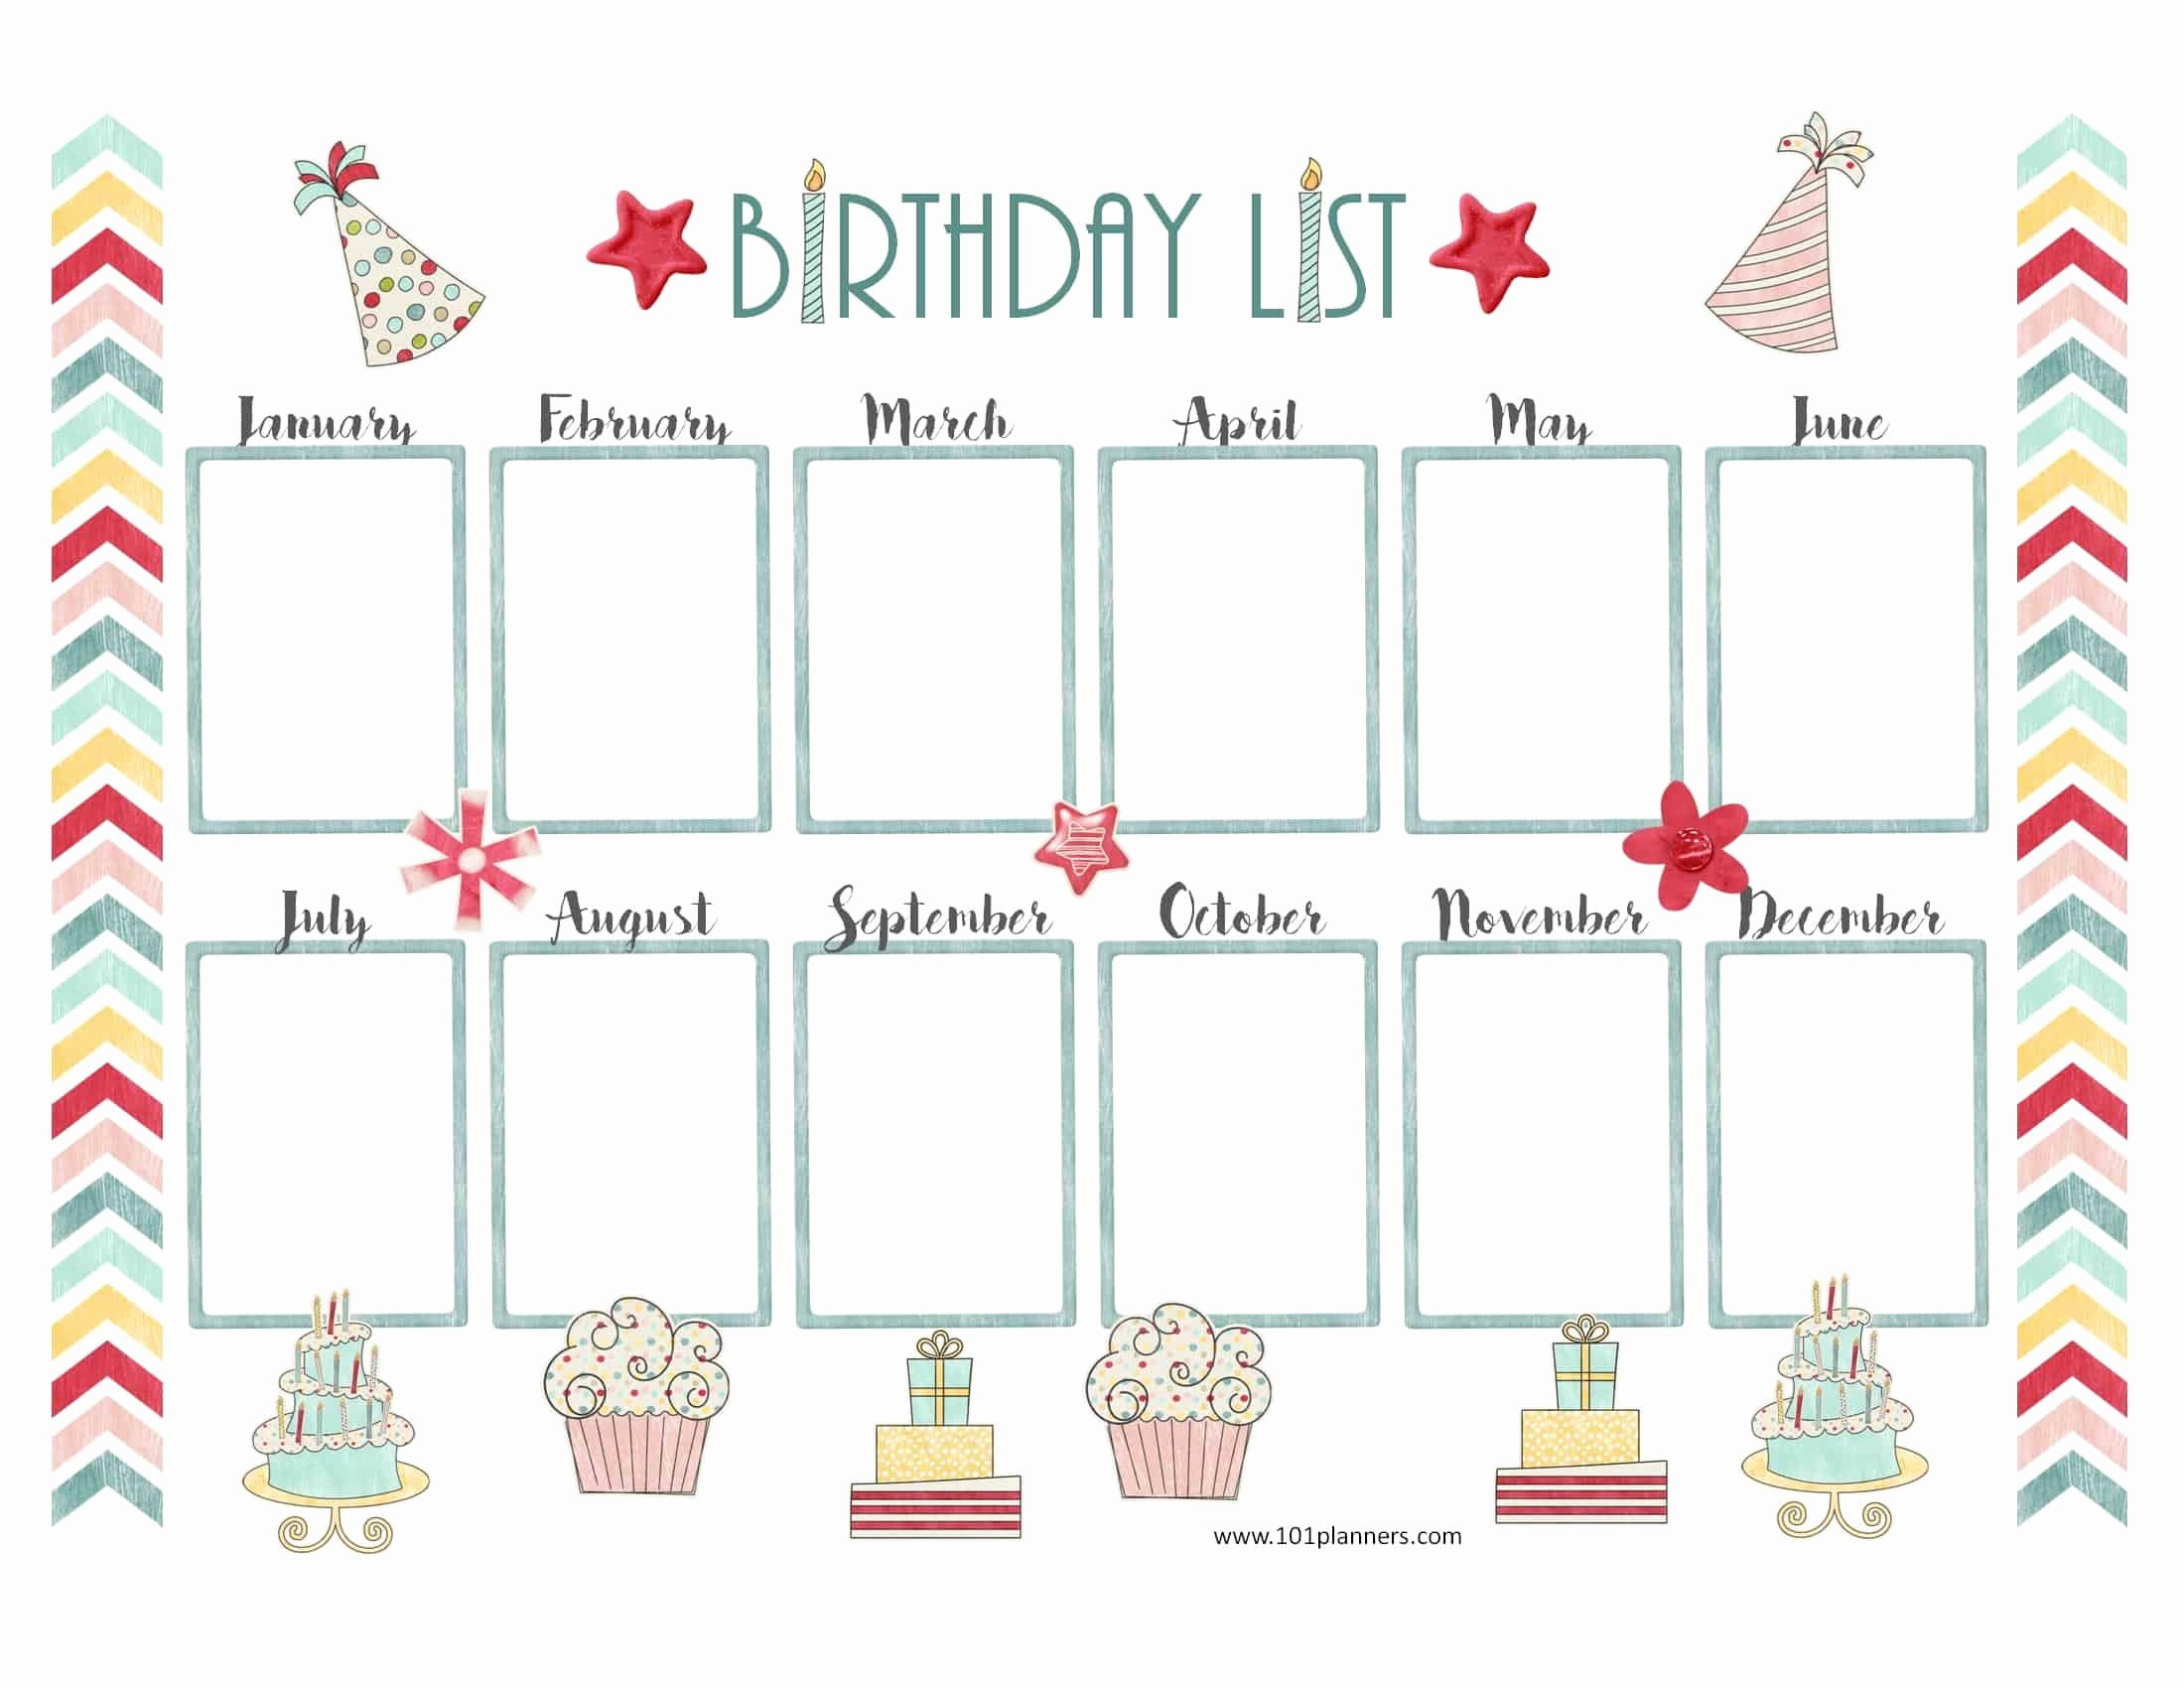 Happy Birthday Template Word Best Of Free Birthday Calendar